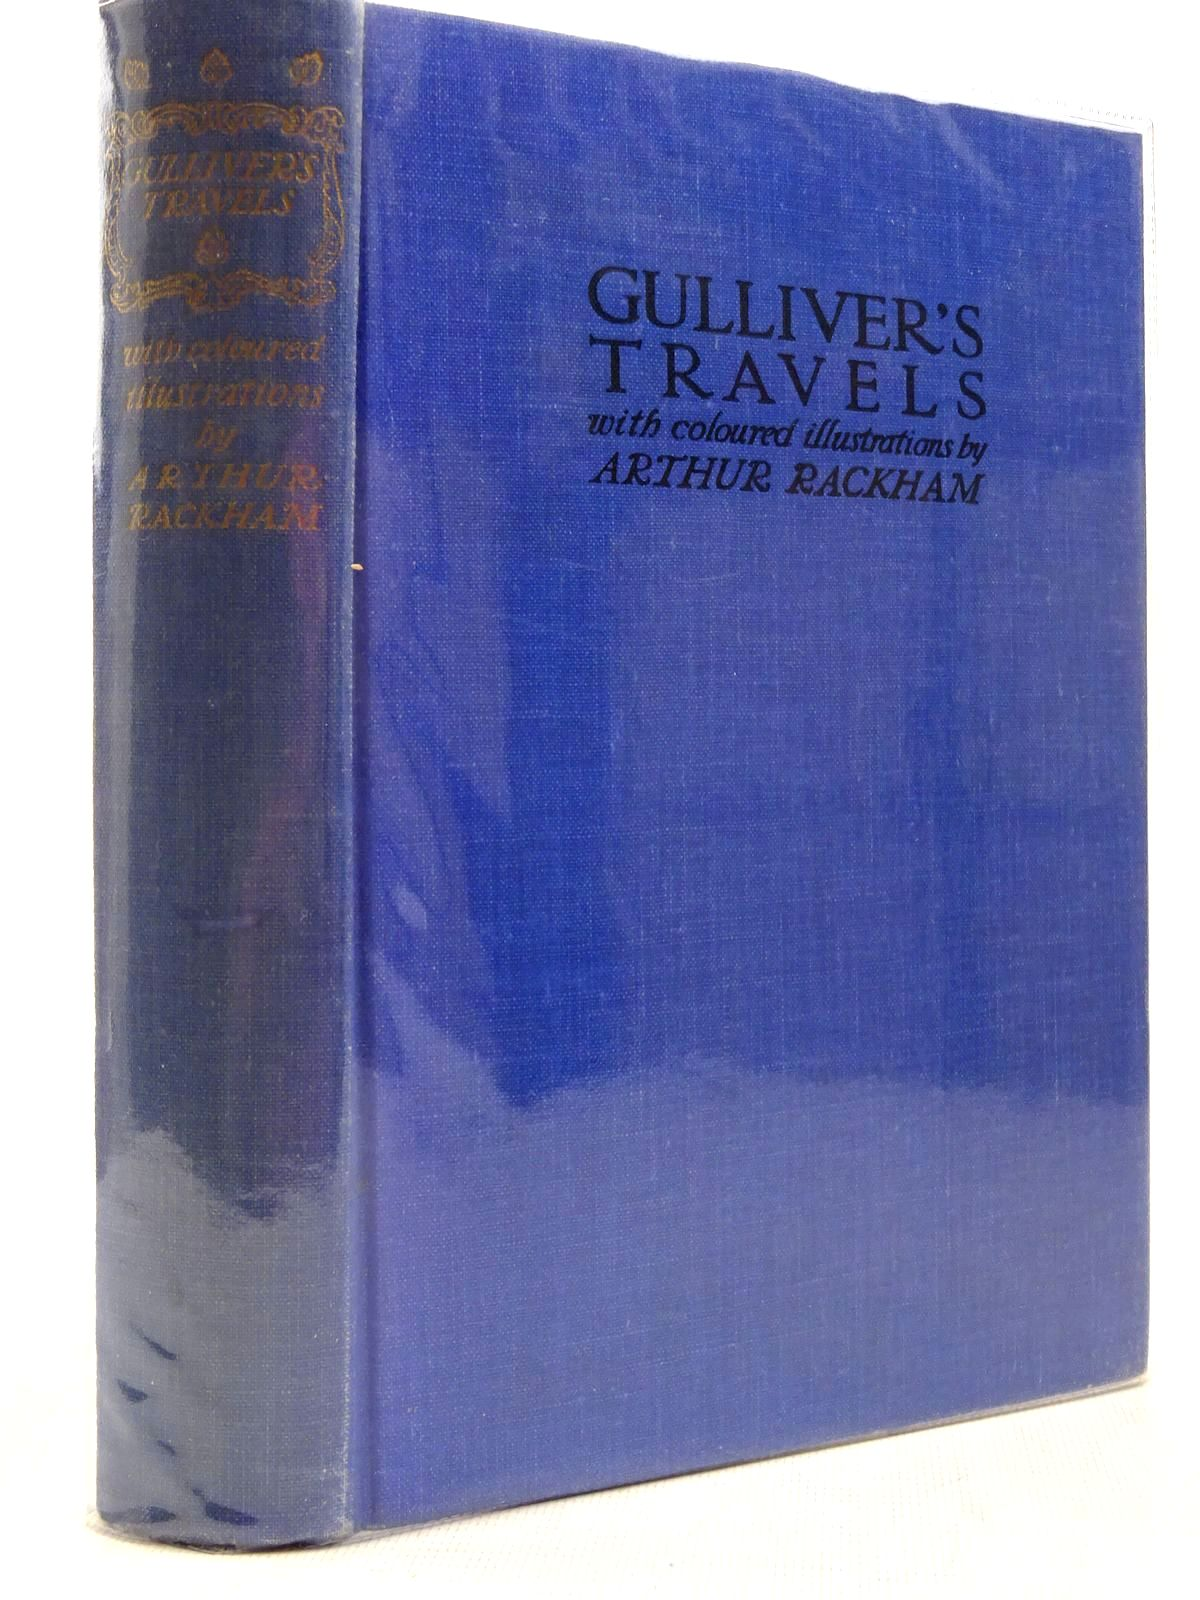 Photo of GULLIVER'S TRAVELS written by Swift, Jonathan illustrated by Rackham, Arthur published by Temple Press (STOCK CODE: 2129119)  for sale by Stella & Rose's Books